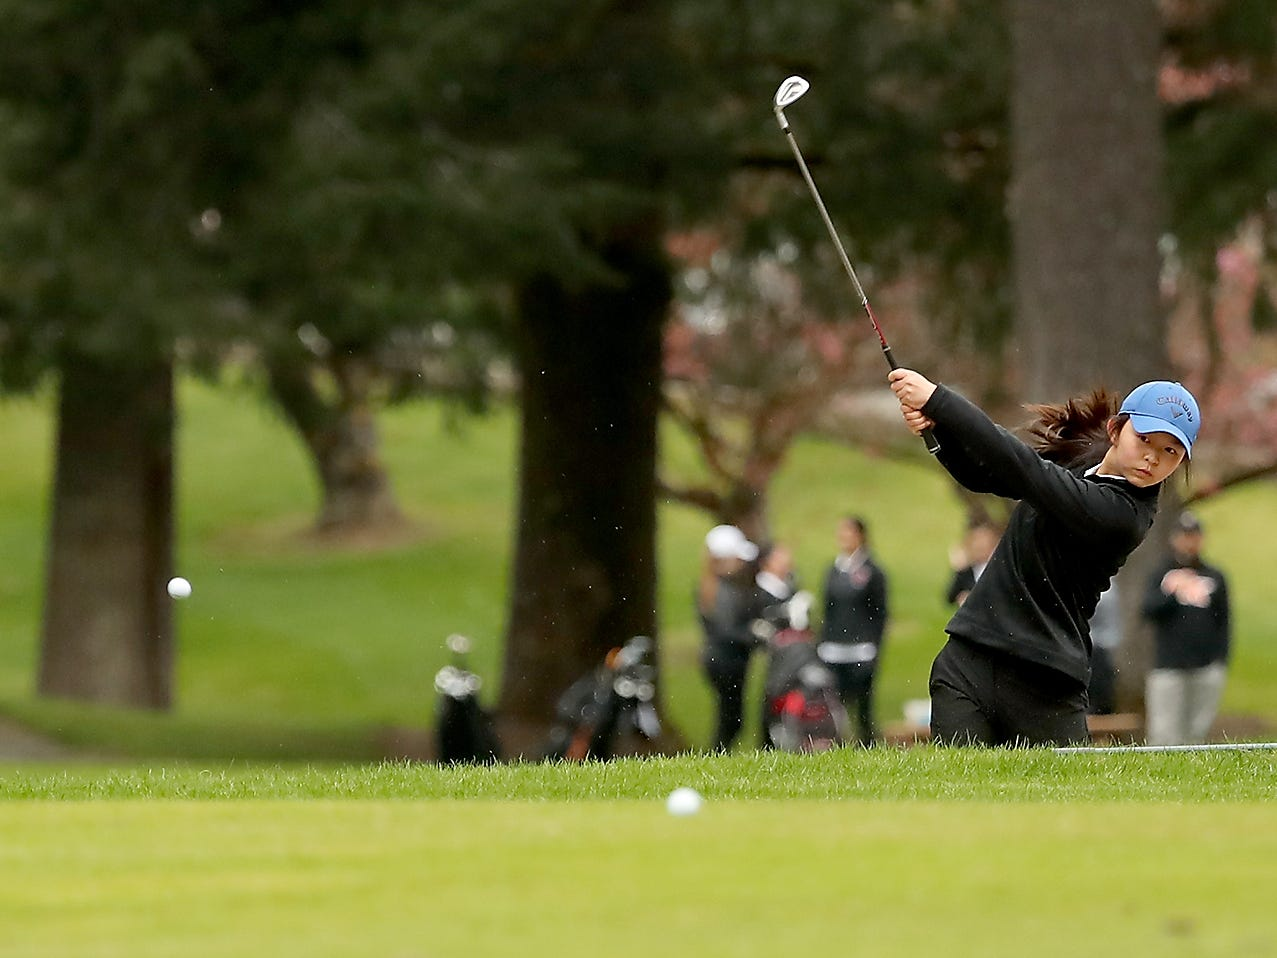 Central Kitsap Golfer Rachel Tan takes a shot during her round at Tuesday's match against Shelton at Gold Mountain Golf Club on Tuesday, April 16, 2019.